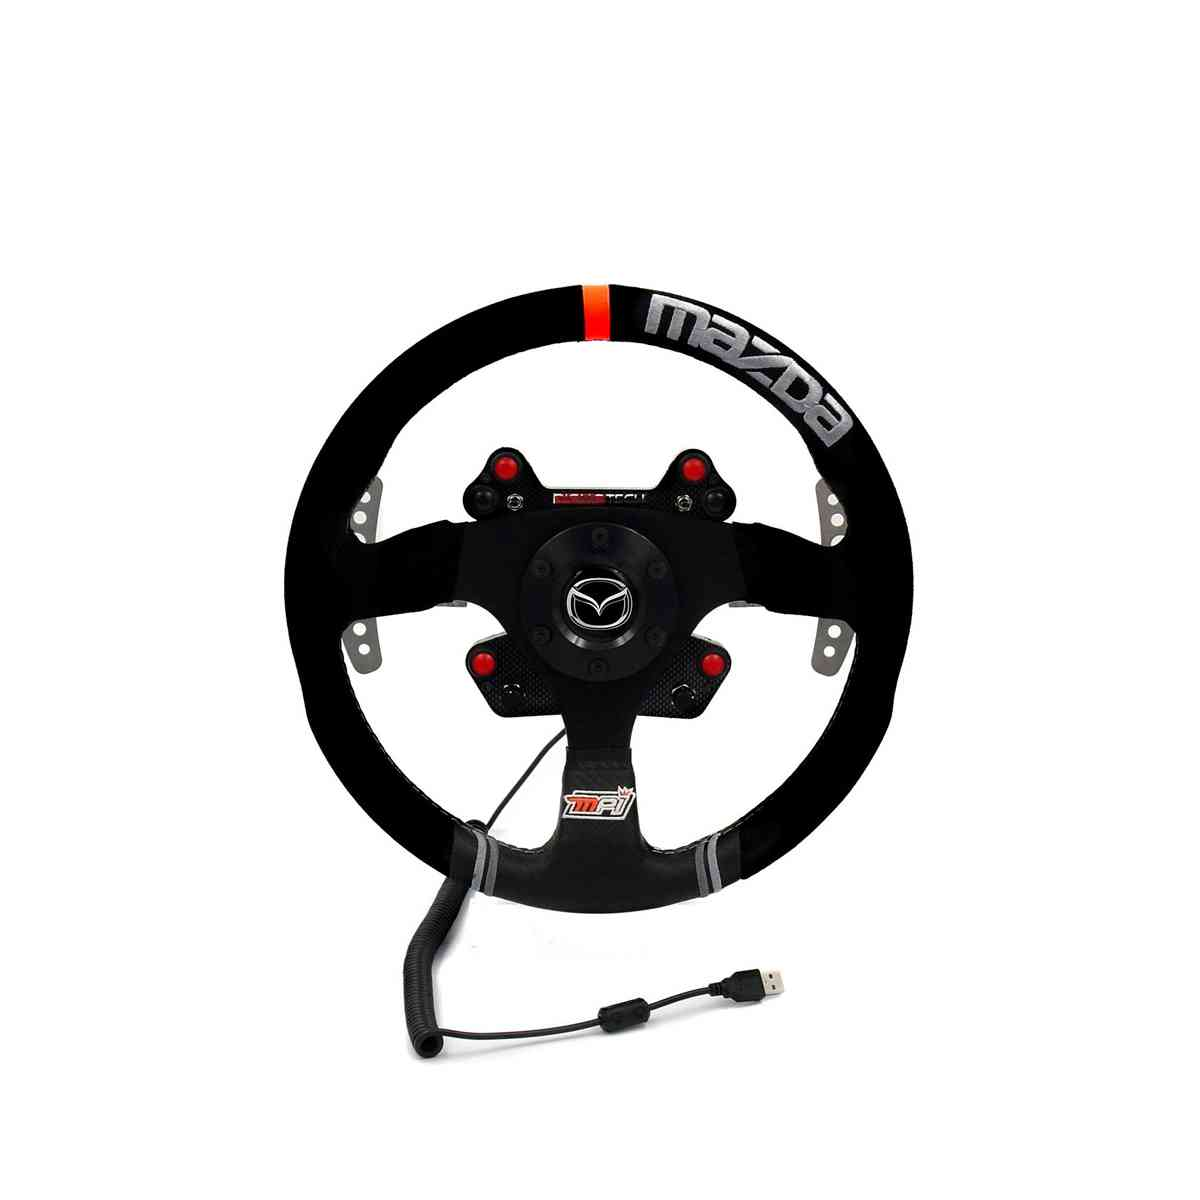 RealGear WHEELpro Mazda/MPI Alcantara Wheel for Direct-Drive Servos